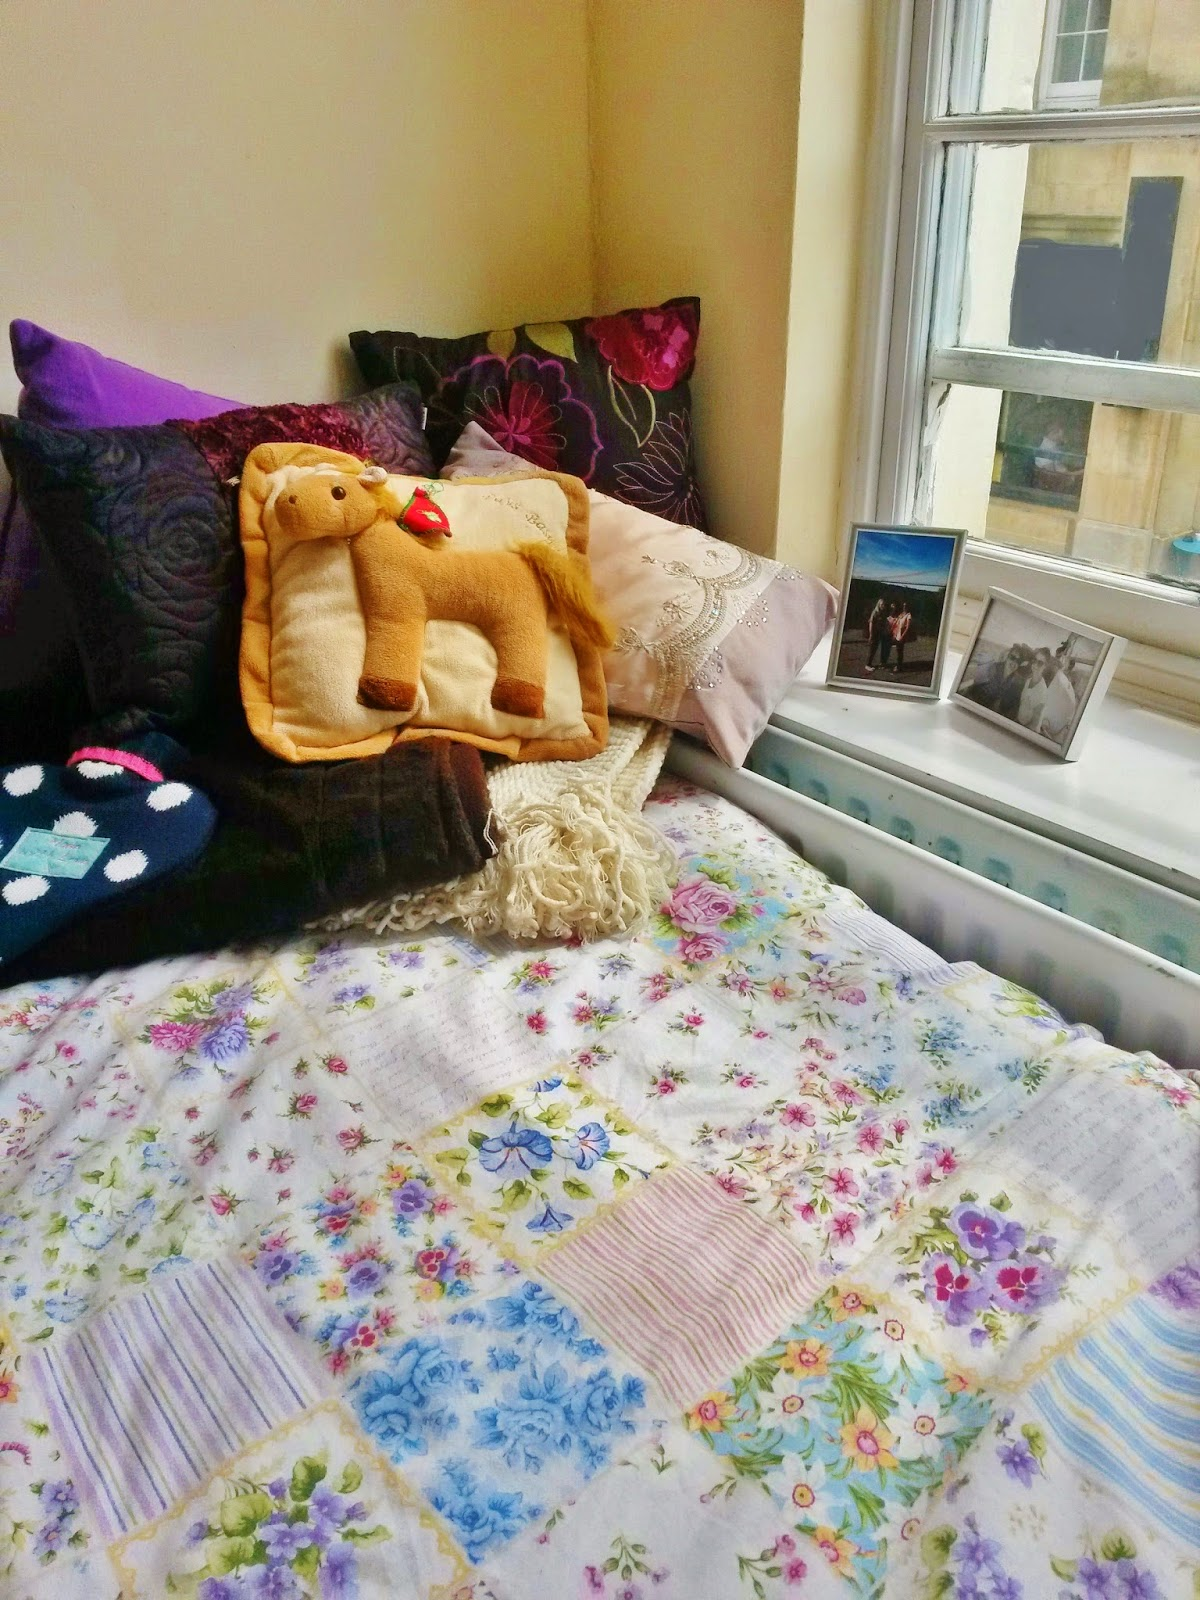 University bedroom, bedding and cushions